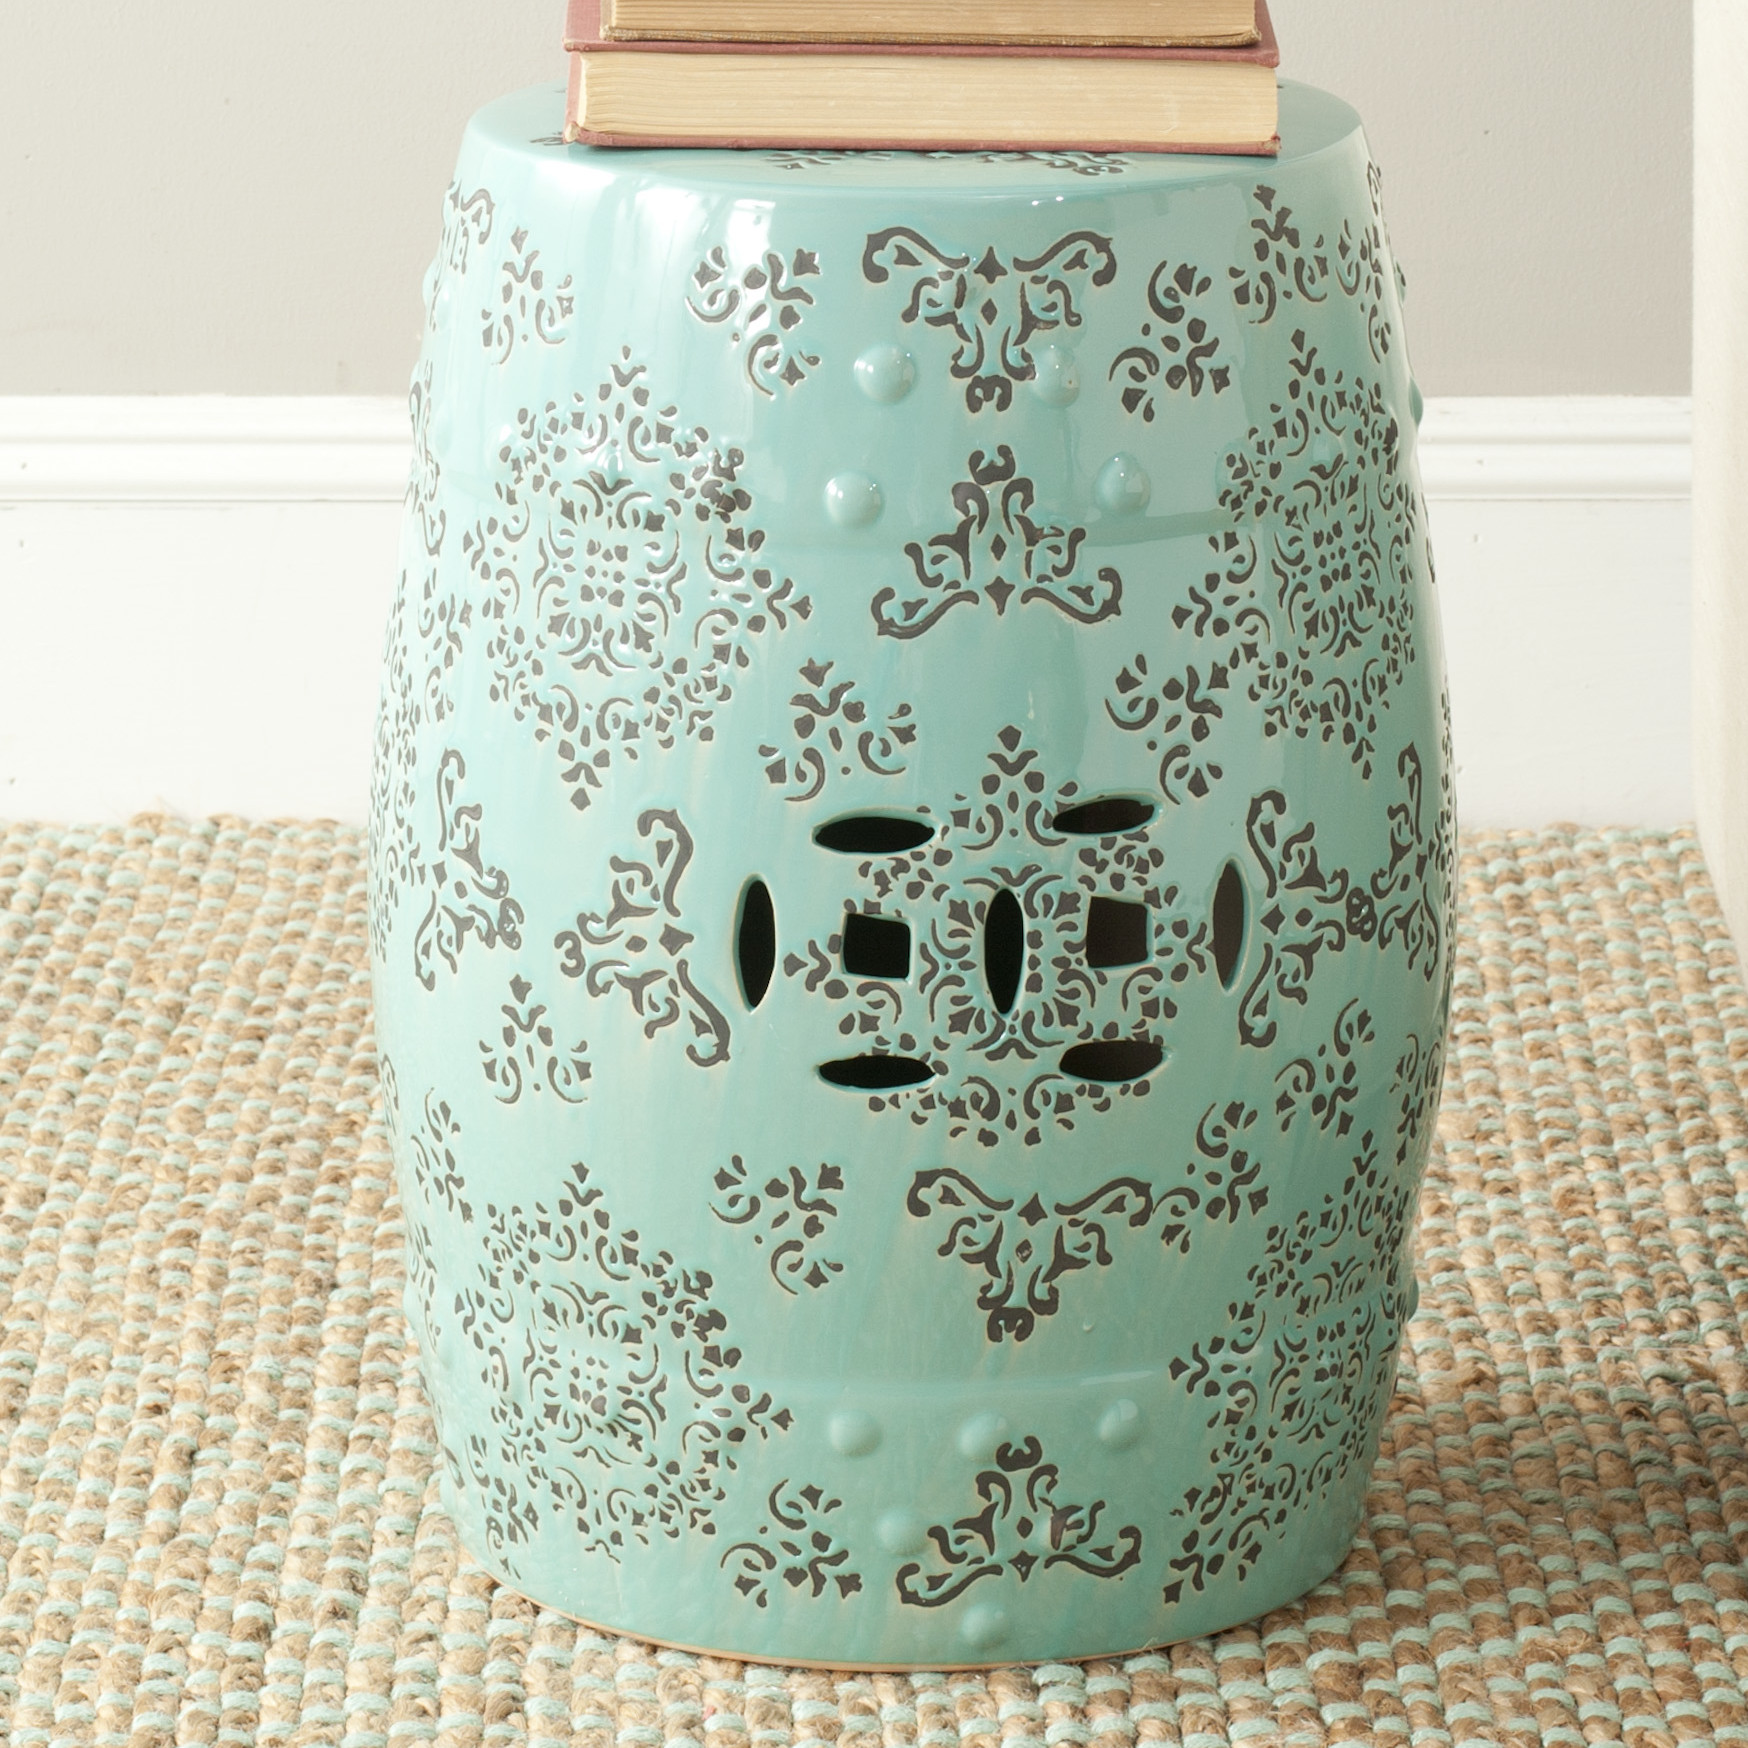 Inspiring garden stool for decorating interior ideas with ceramic garden stool